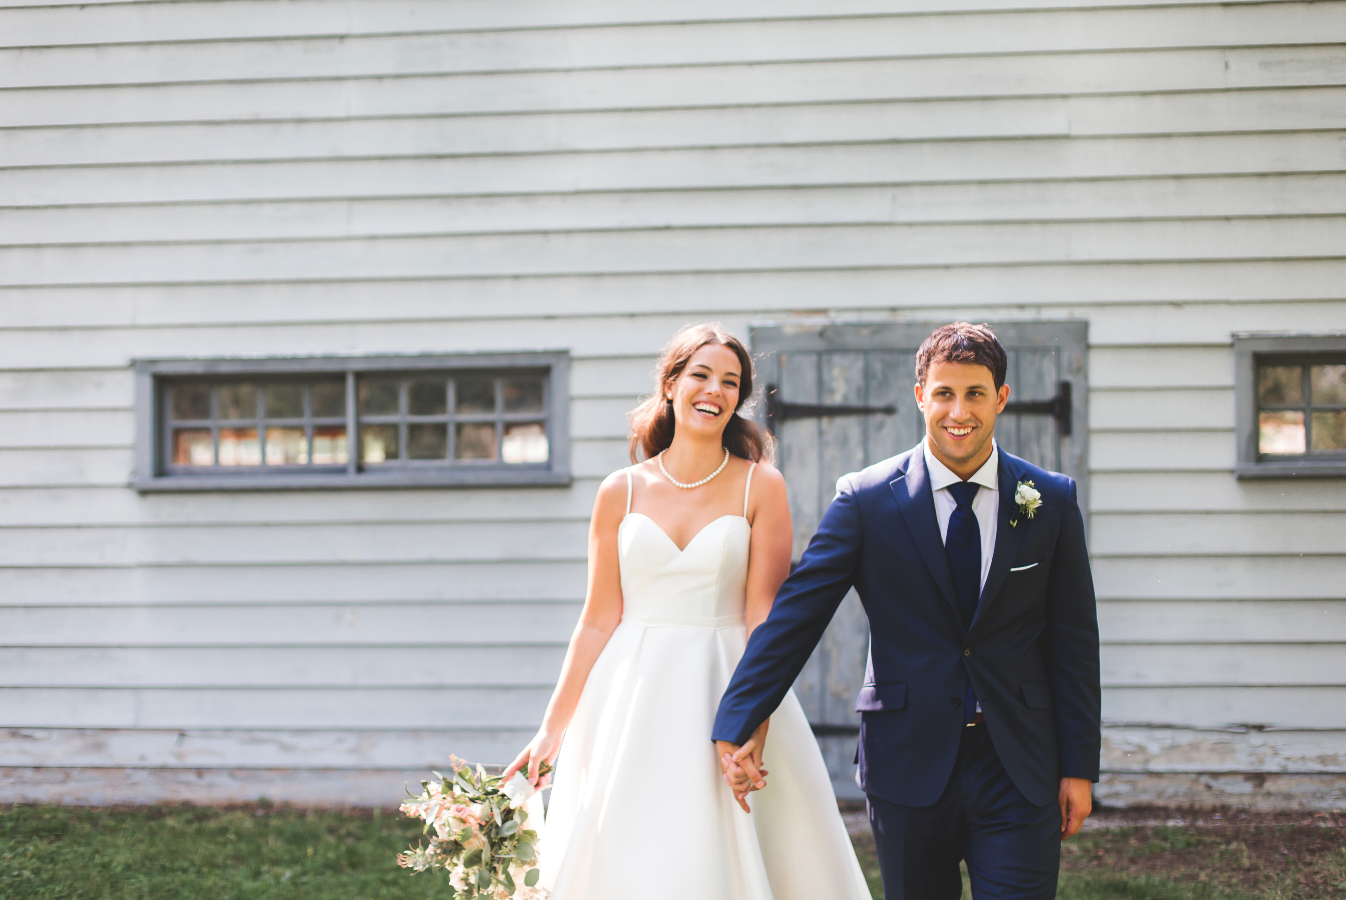 Wedding-Photographer-Niagara-on-the-Lake-Photographer-Queens-Landing-Moments-by-Lauren-Photo-Image-8.png